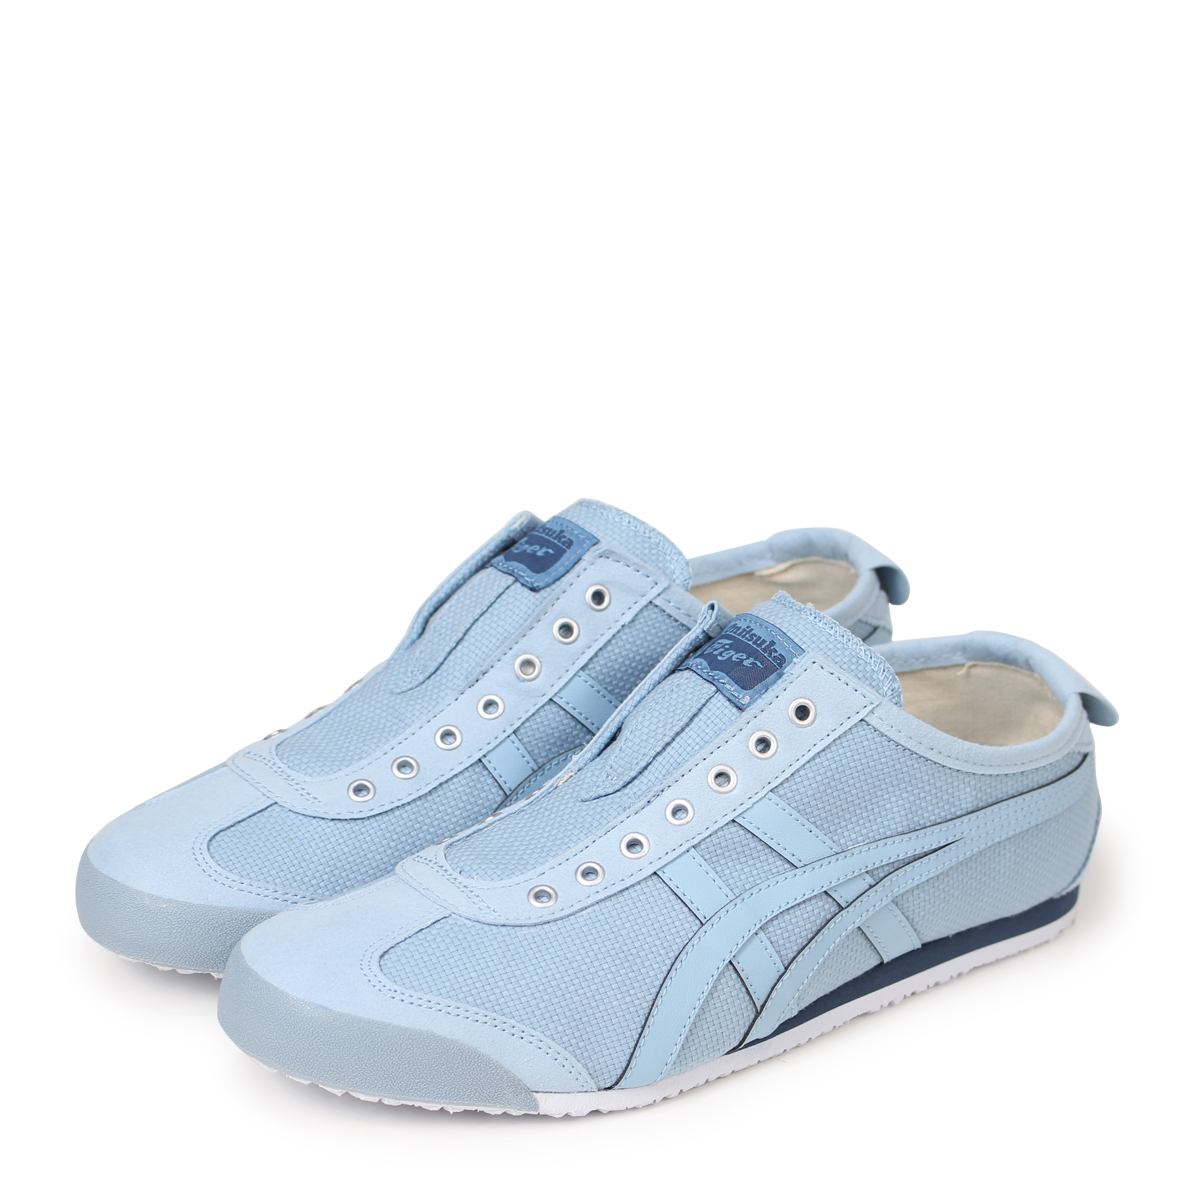 half off 5da69 bcb56  the Onitsuka tiger which gets high popularity as from Japan in Europe!